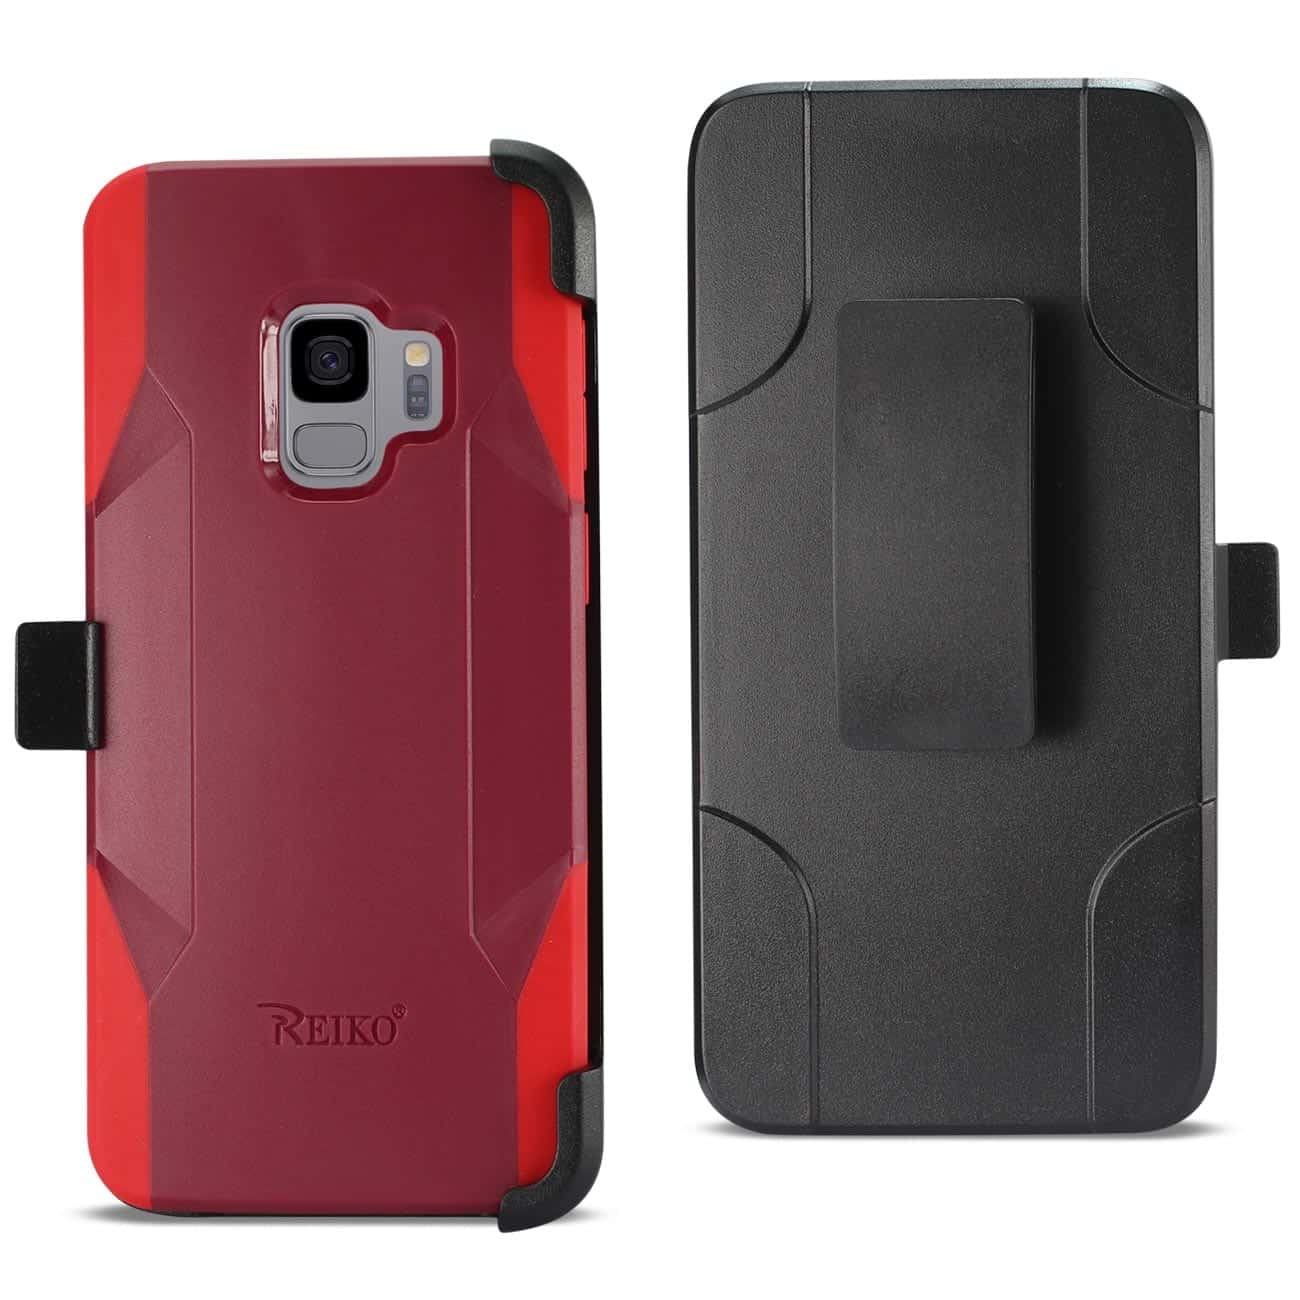 Samsung Galaxy S9 3-In-1 Hybrid Heavy Duty Holster Combo Case In Burgundy